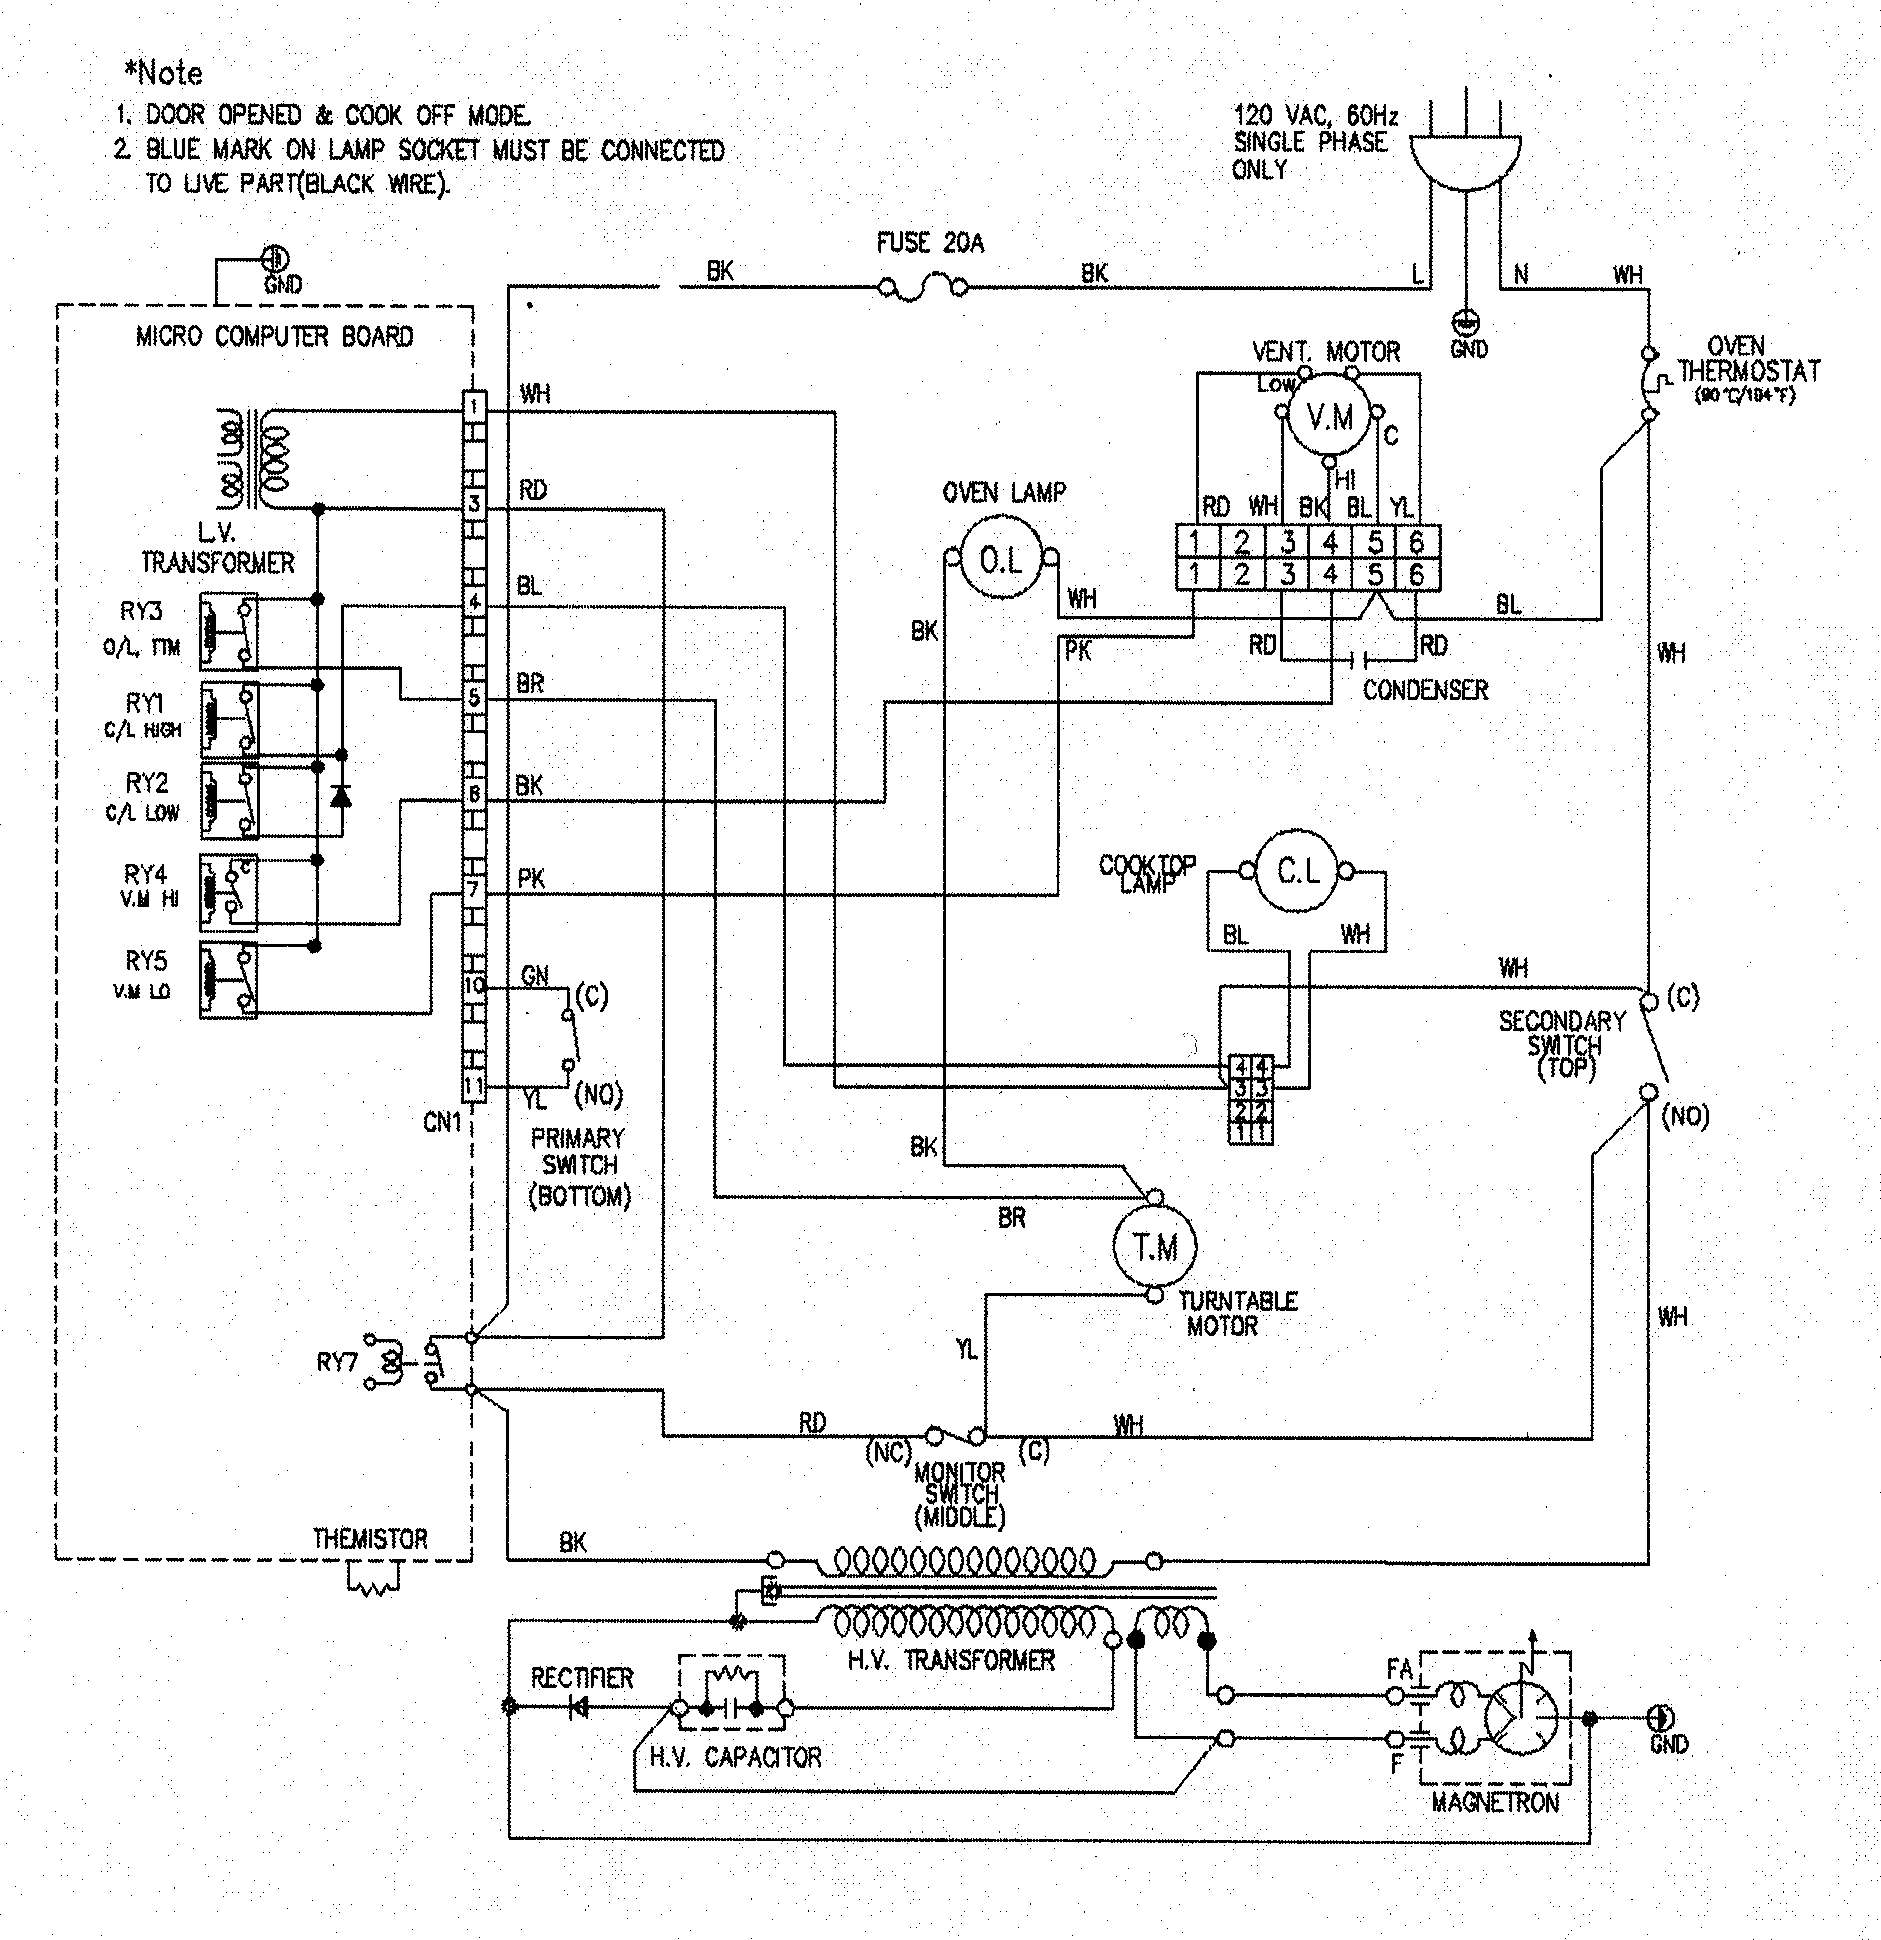 microwave schematic 3 schematic of the cryogenic microwave Kenmore Microwave Wiring Diagram model 72166469500 countertop microwave